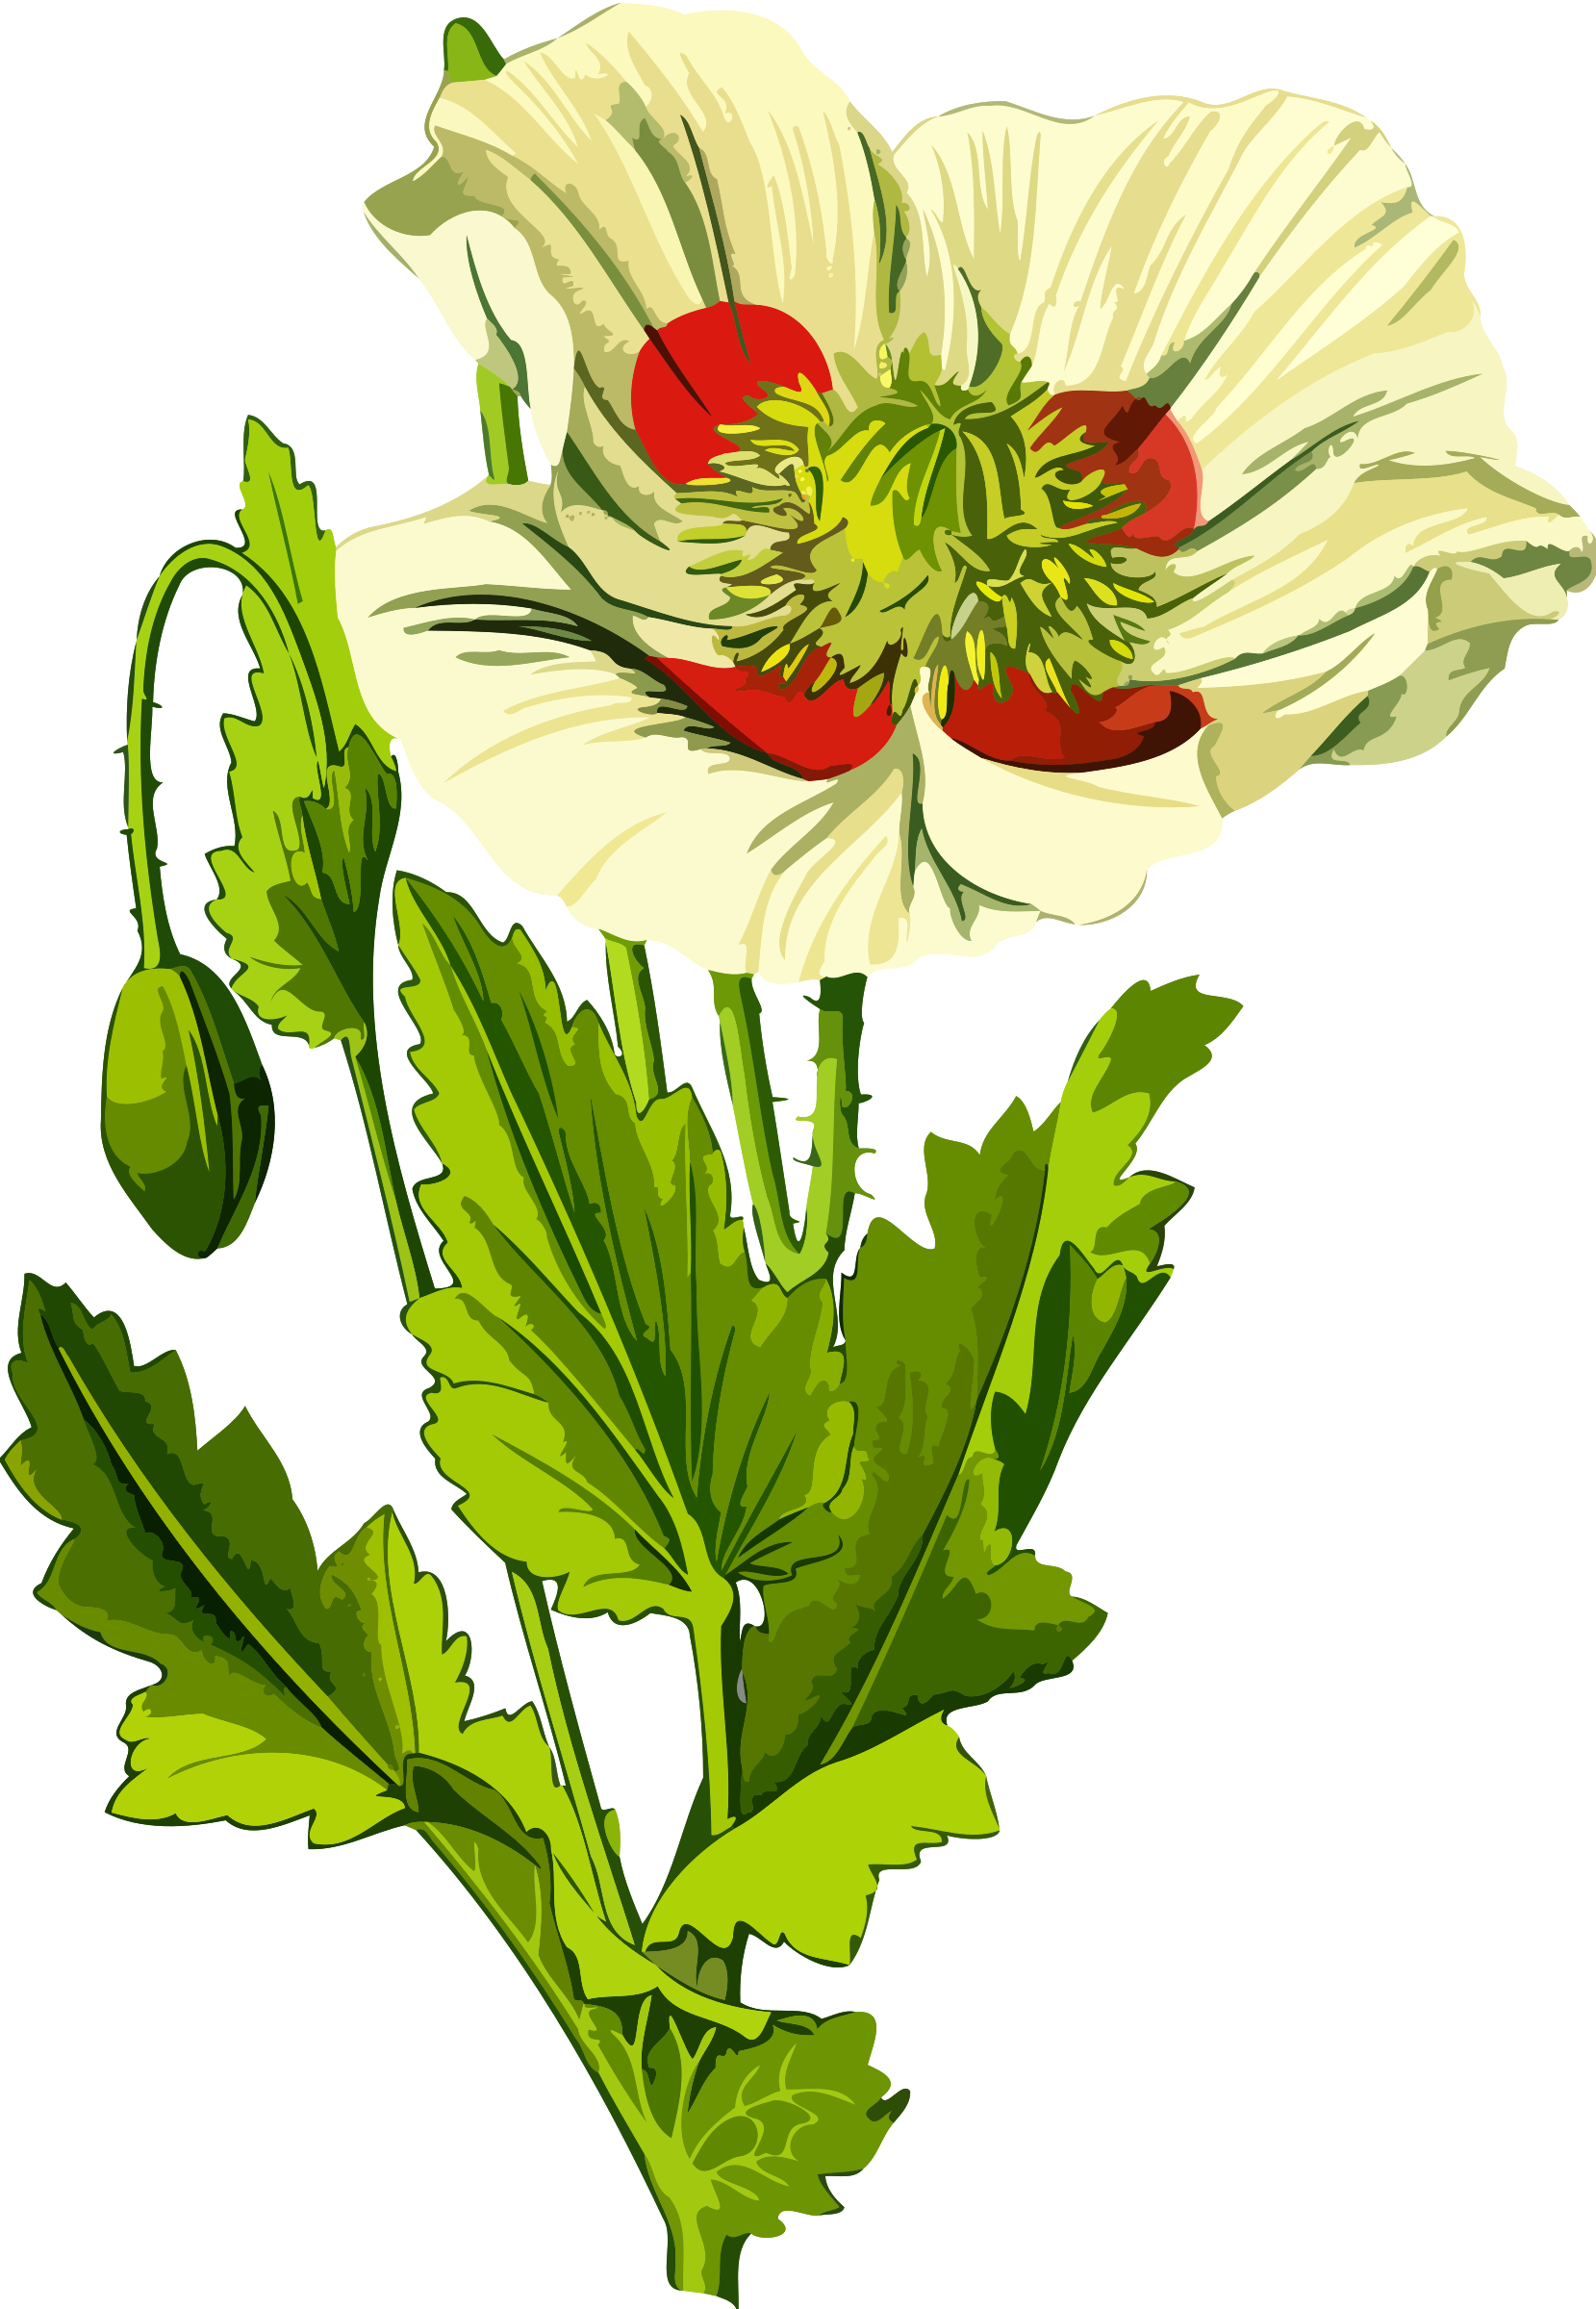 Opium poppy 3 (low resoloution) by Firkin